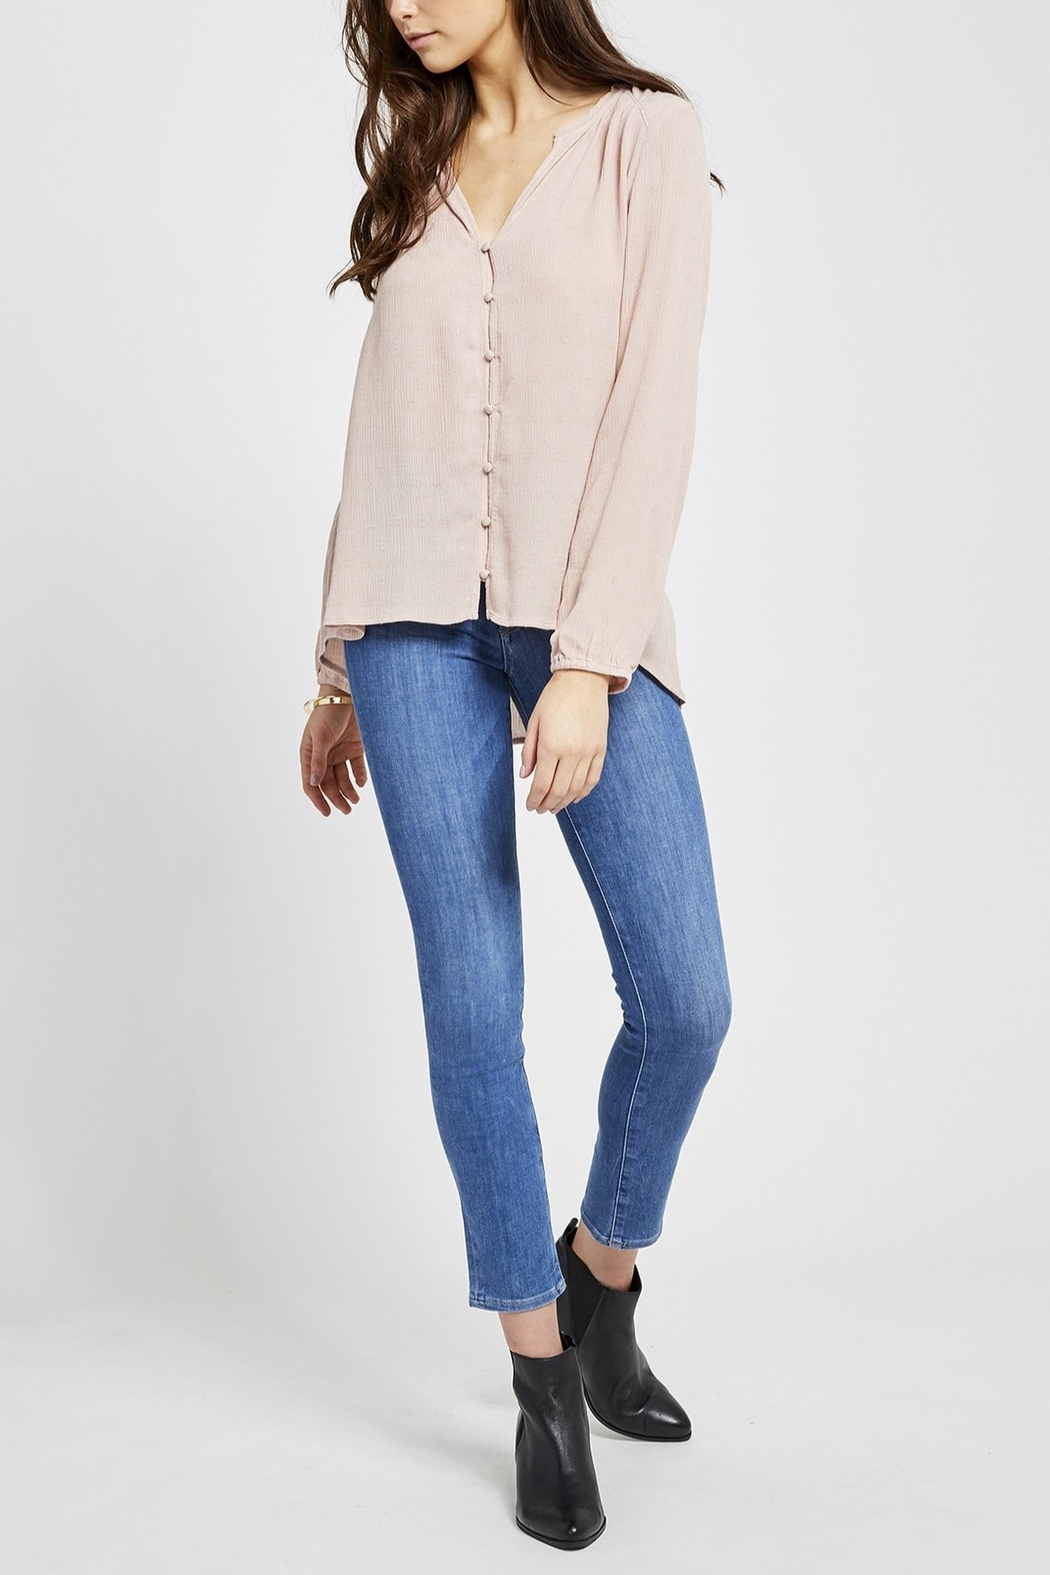 Gentle Fawn Emma Button Blouse - Main Image